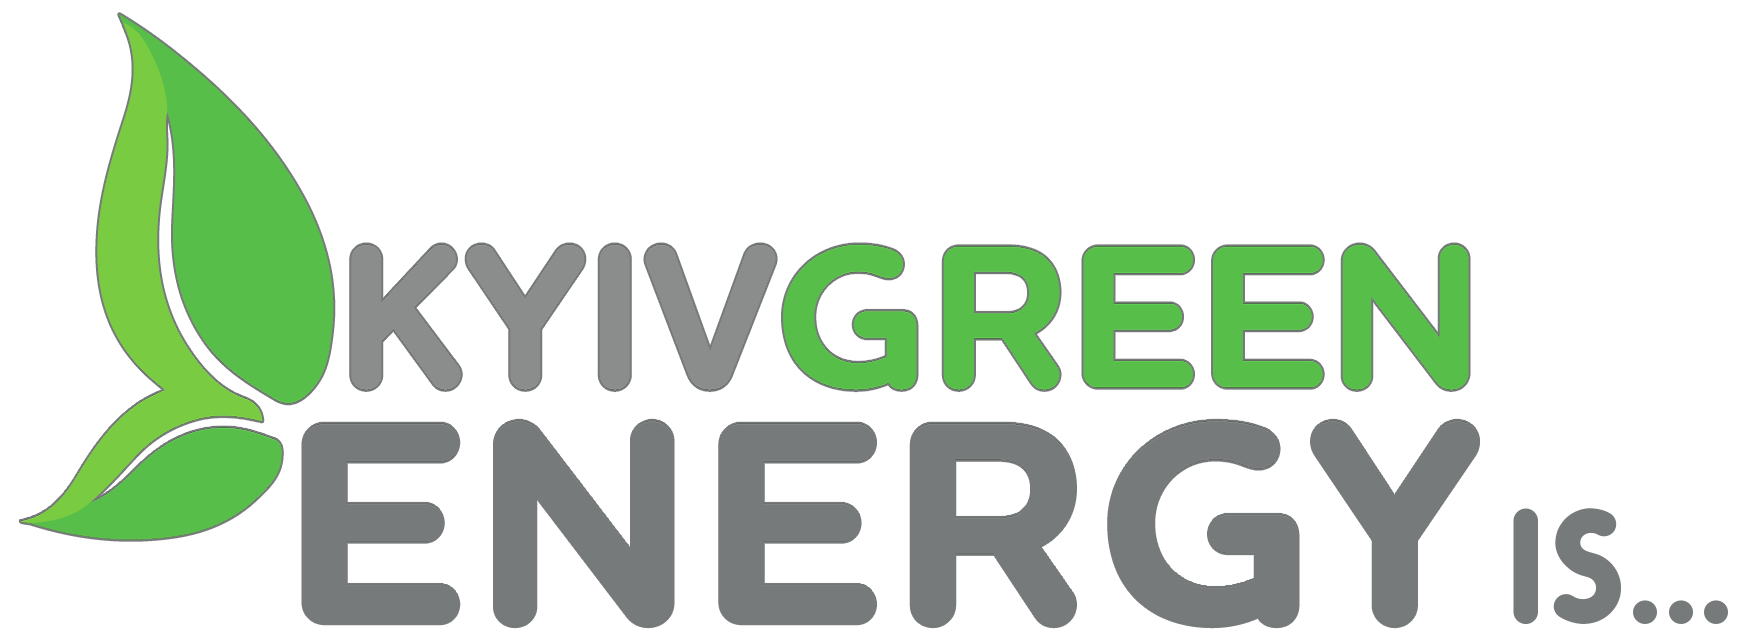 kyivgreen energy это